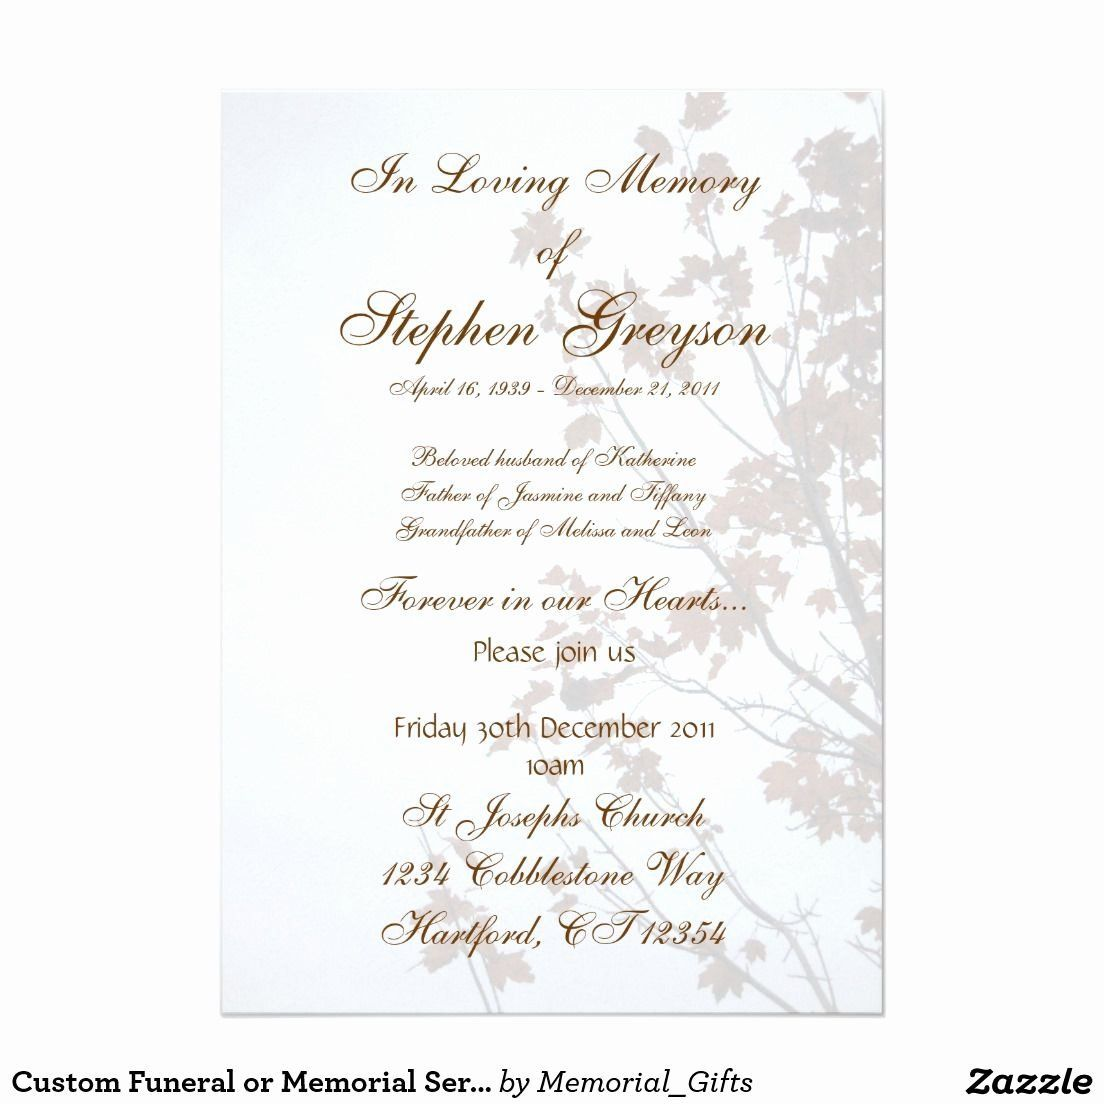 004 Striking Funeral Invitation Template Free High Def  Memorial Service Card ReceptionFull